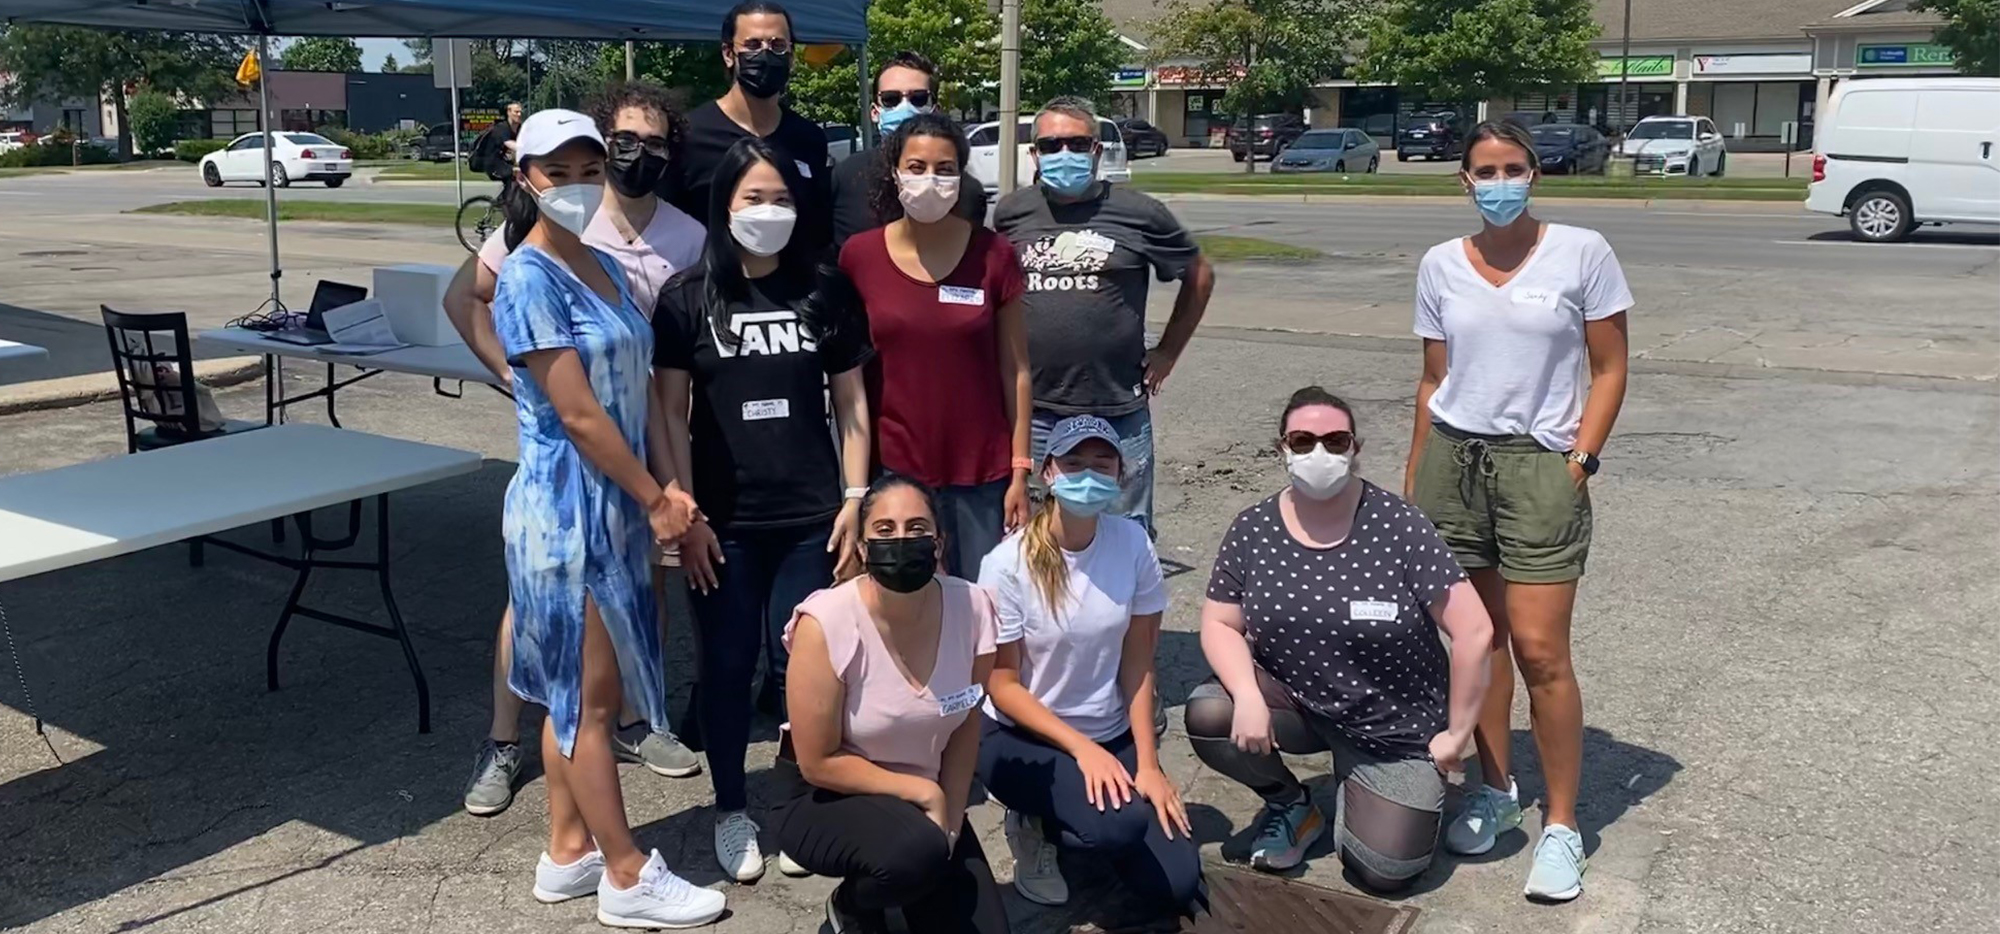 The team that ran the clinic smiling and wearing masks in a parking lot